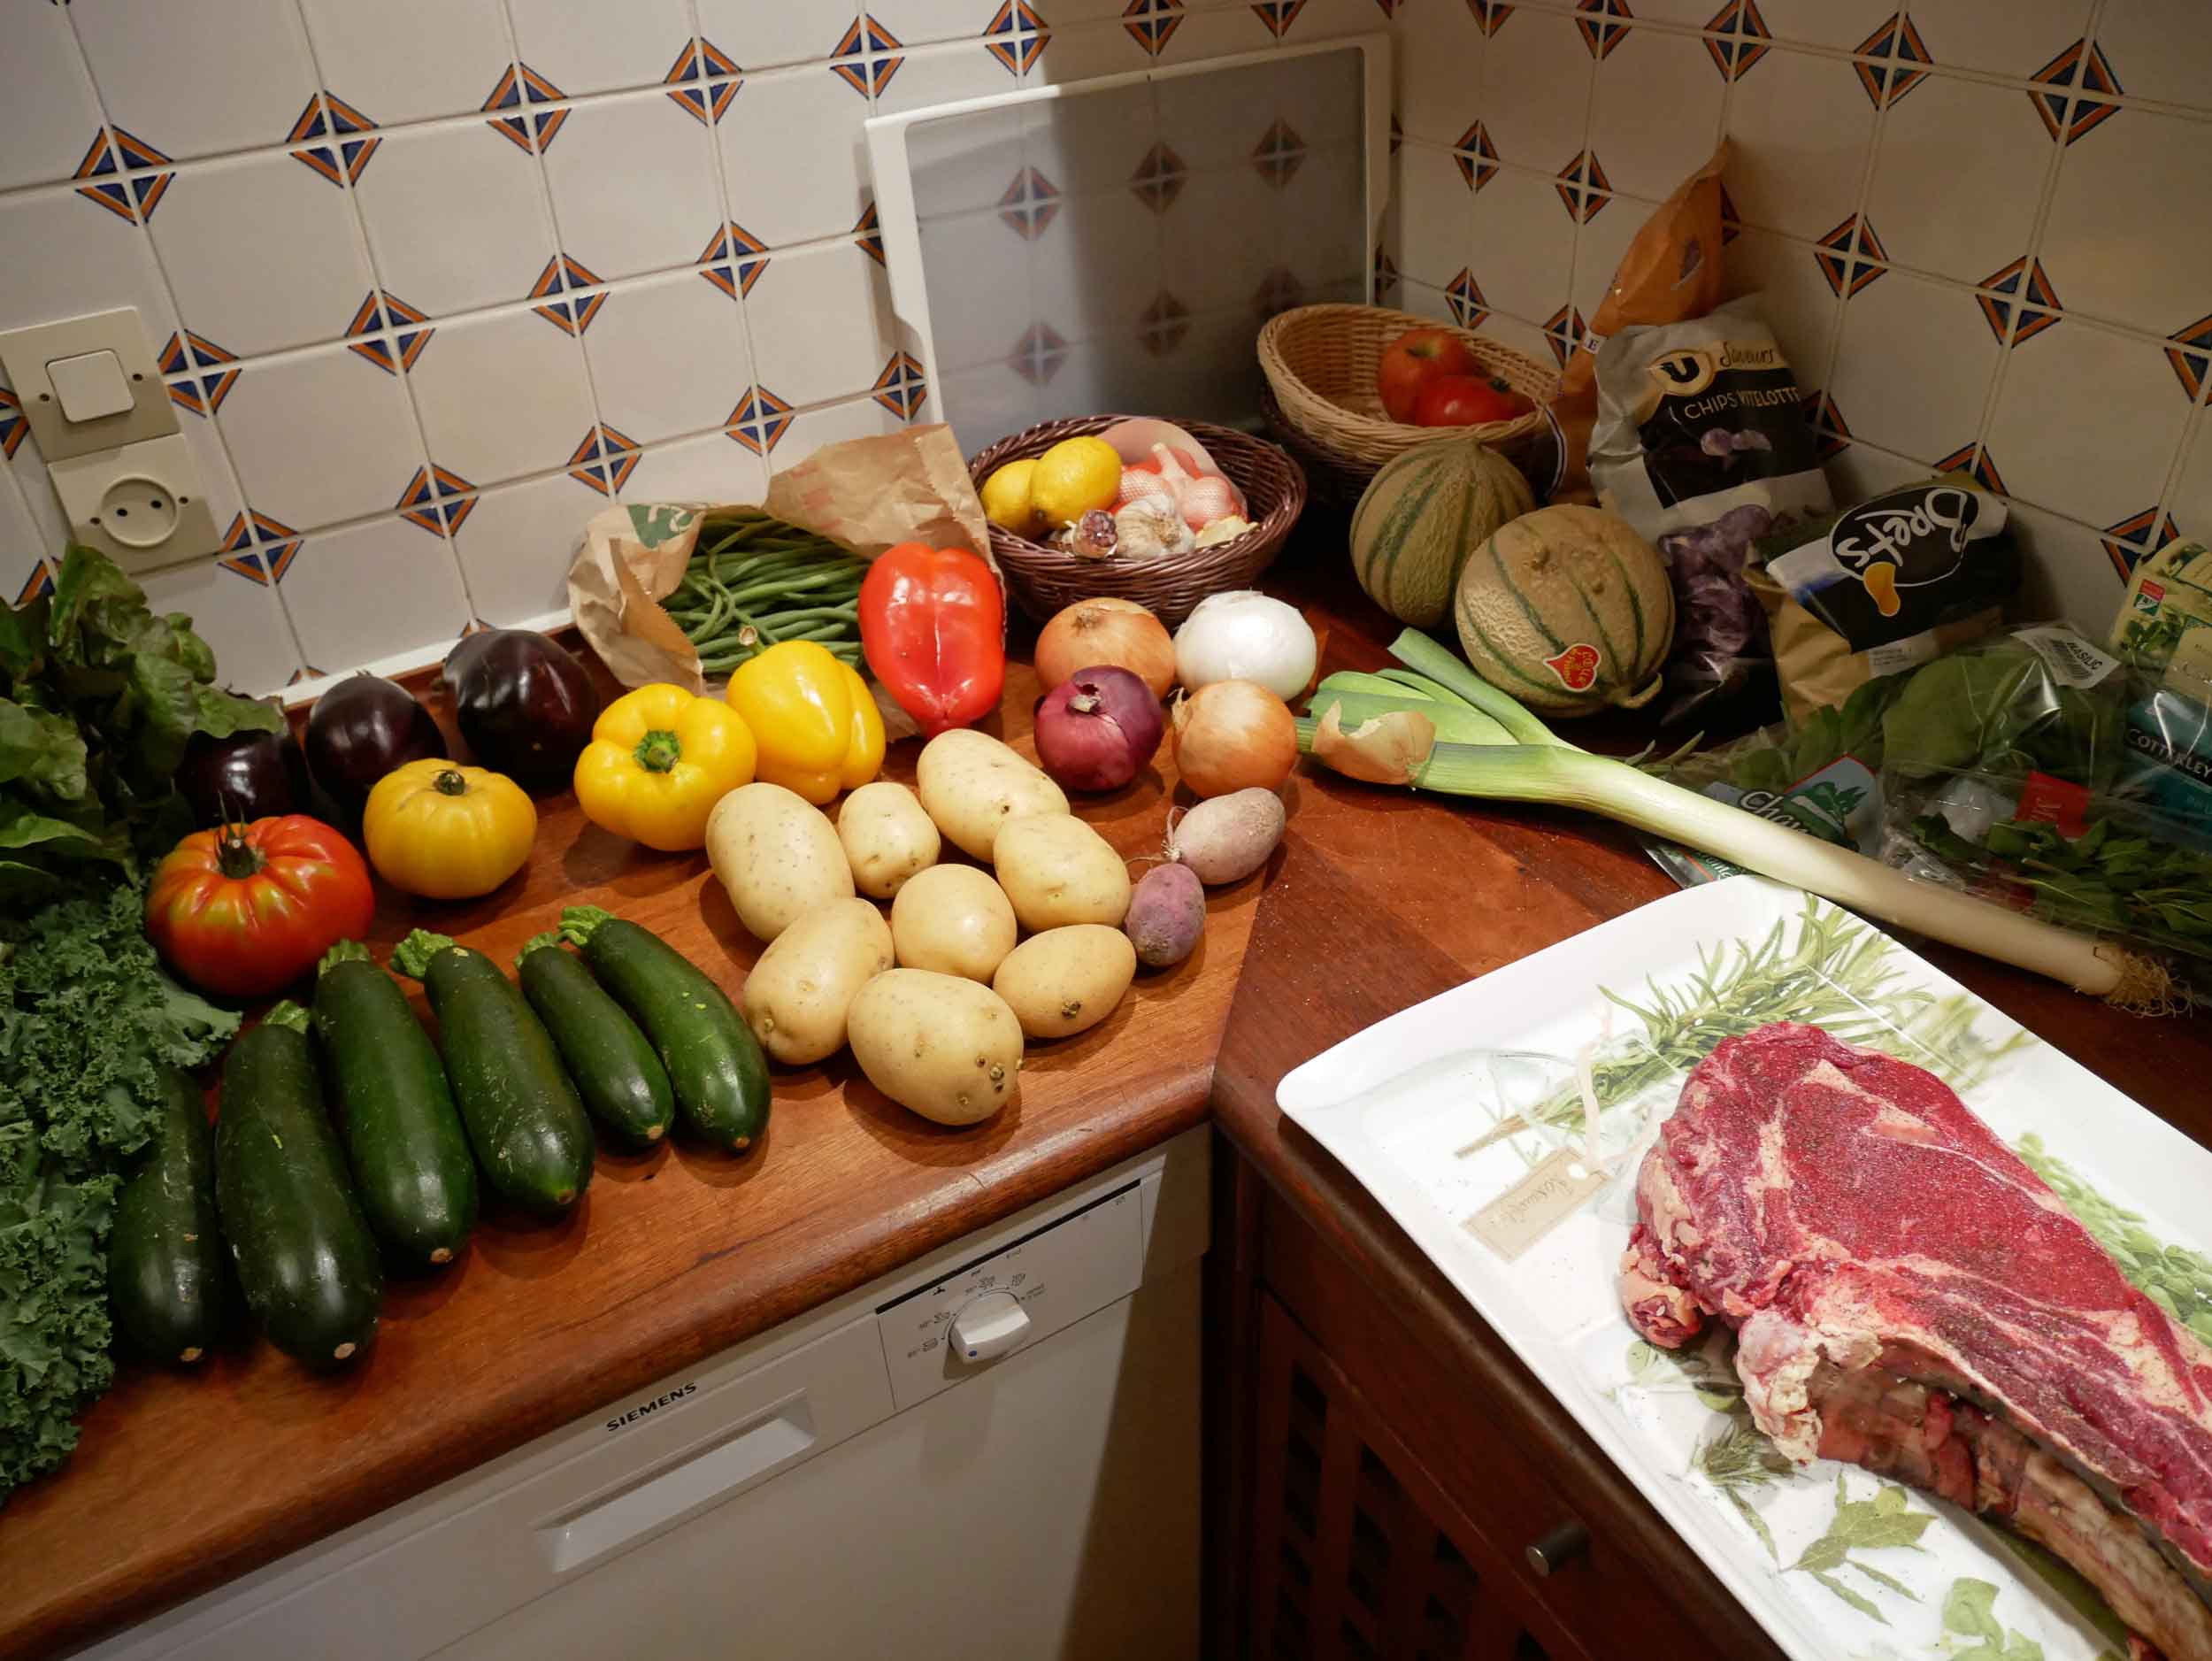 The day's finds – we still can't believe the size of that côte de bœuf!